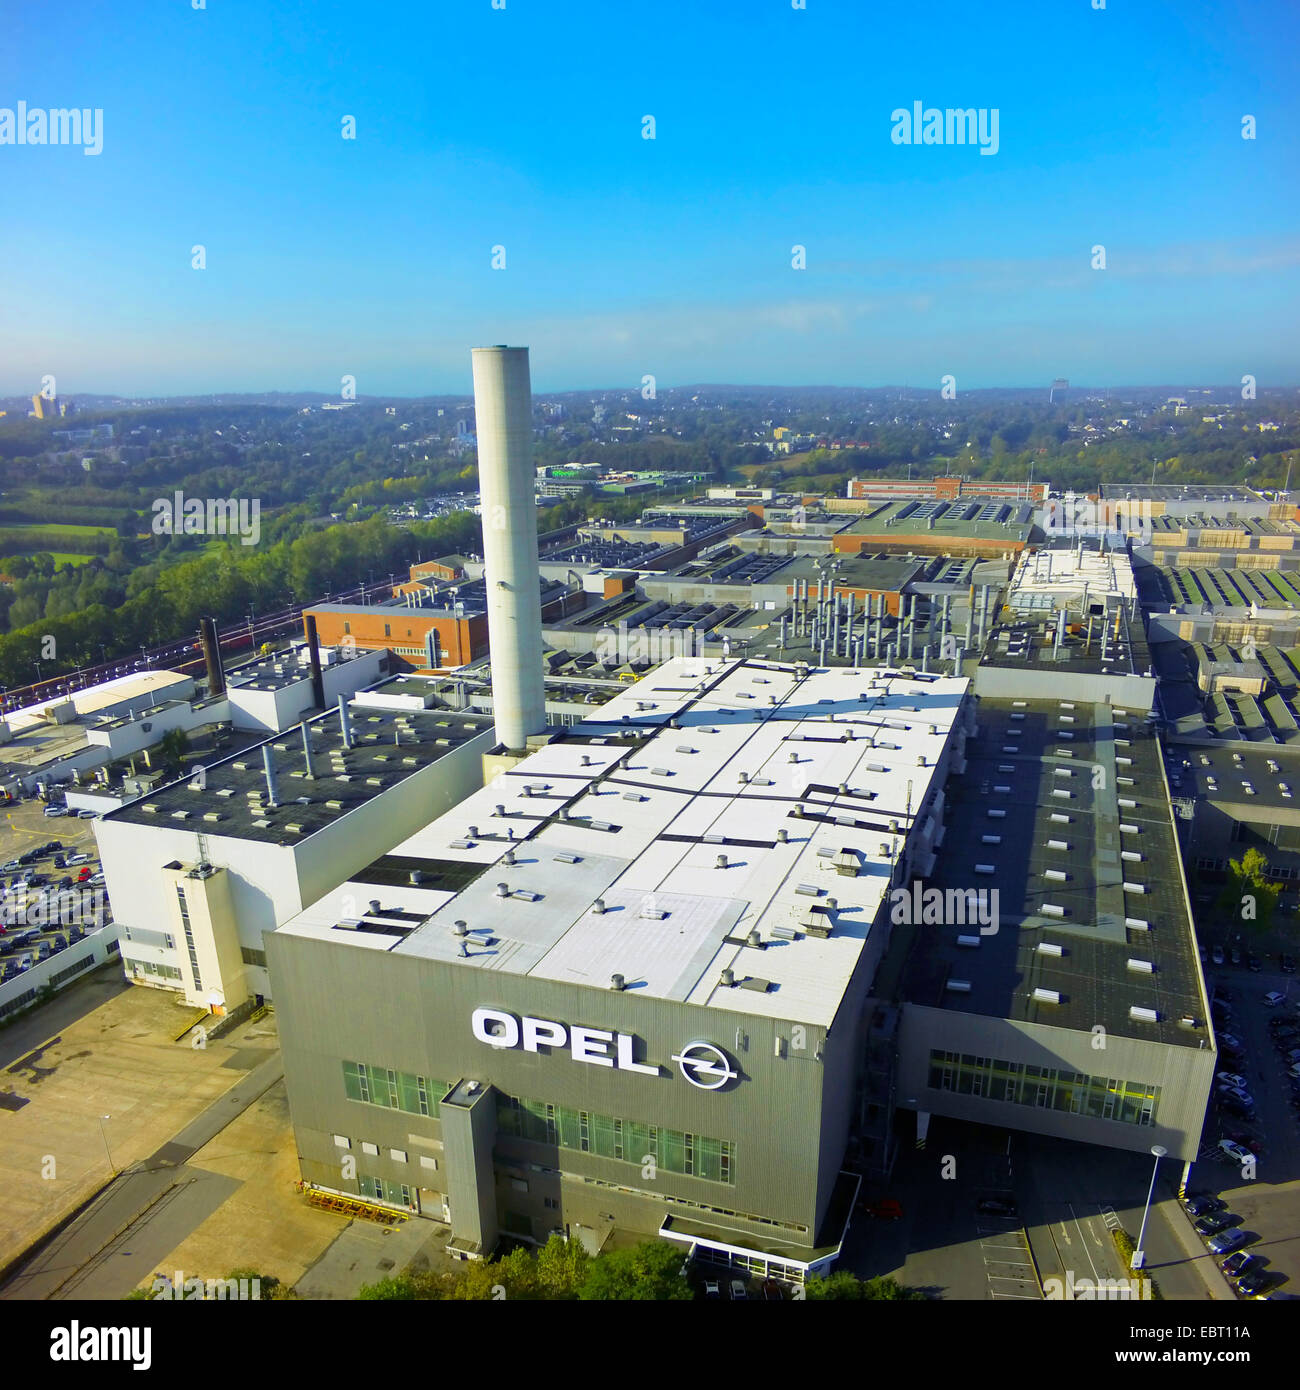 aerial view of Opel's manufacturing plant in Bochum, Germany, North Rhine-Westphalia, Ruhr Area, Bochum Stock Photo